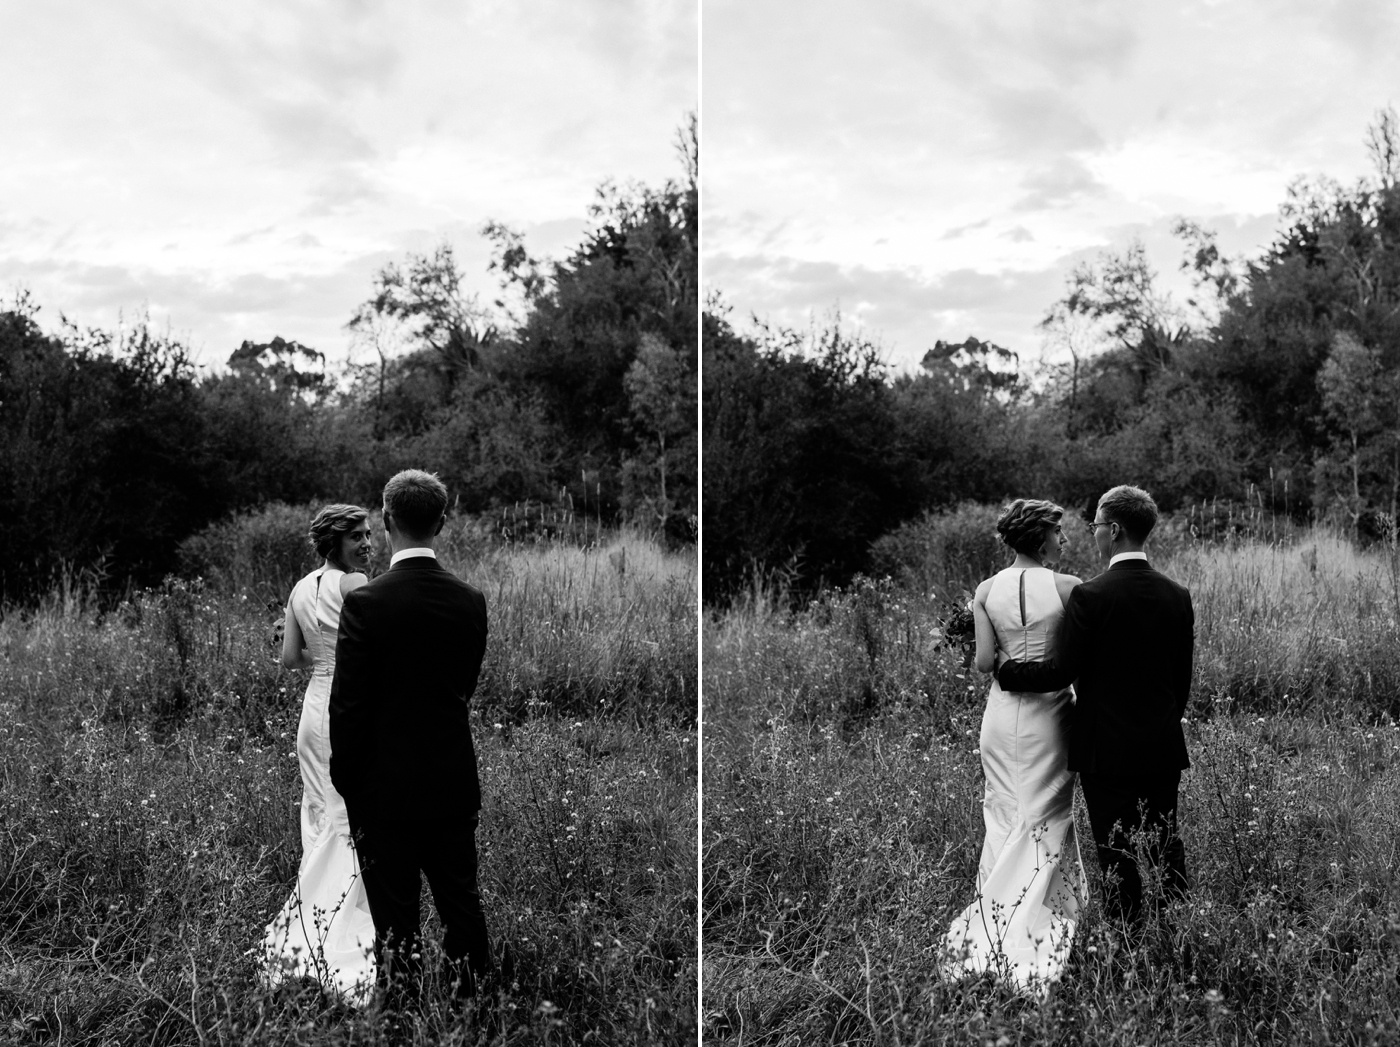 Liam & Bec - White House Adelaide Hills Wedding - Natural Wedding Photography in Adelaide - www.katherineschultzphotography.com 86